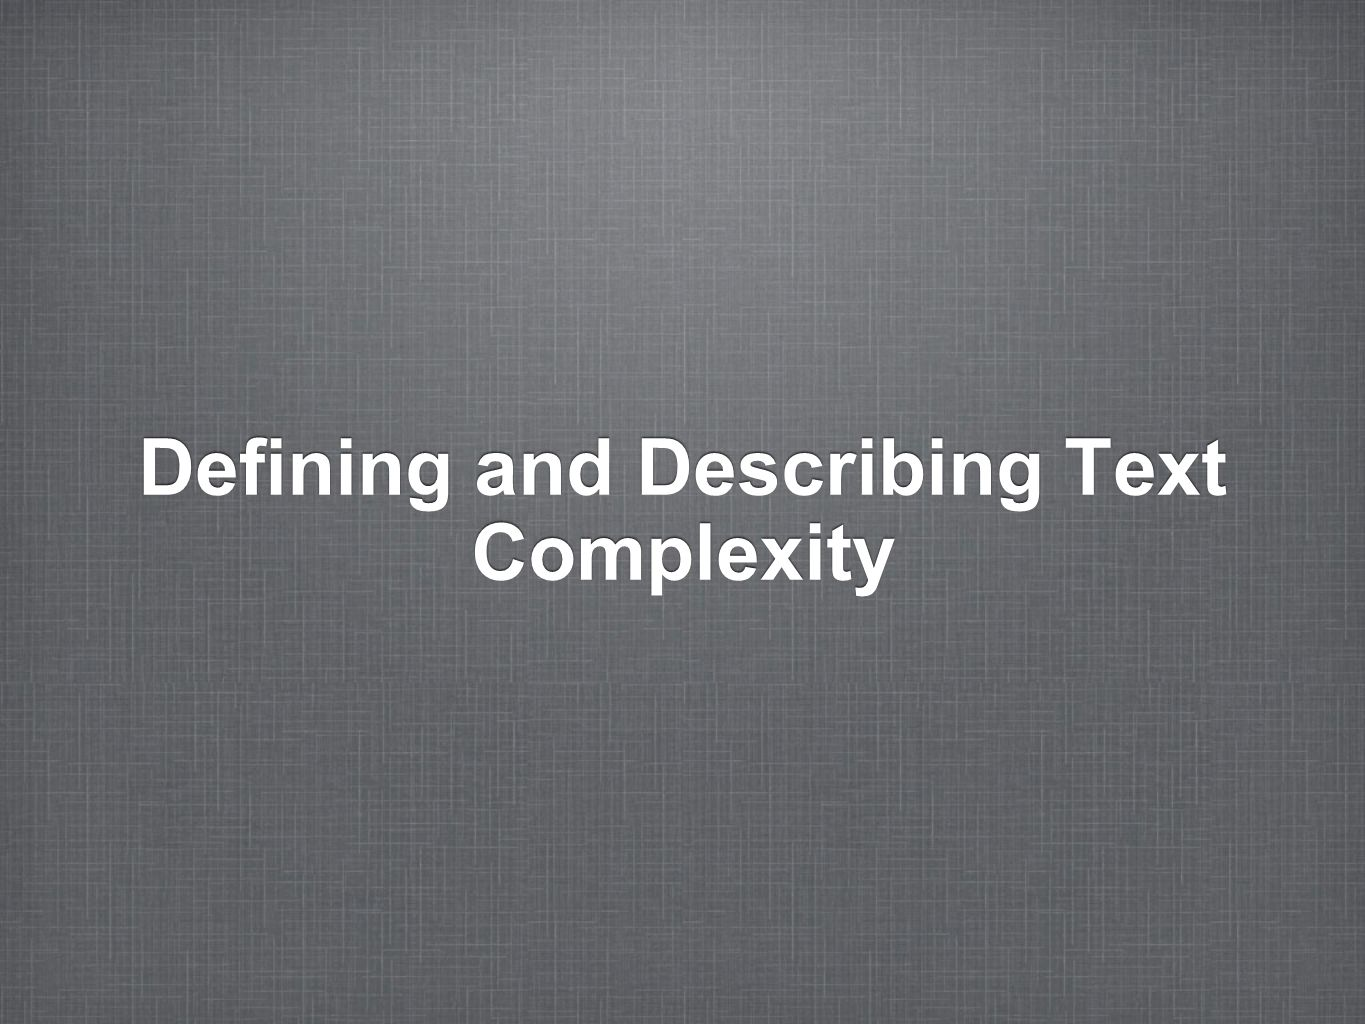 Defining and Describing Text Complexity